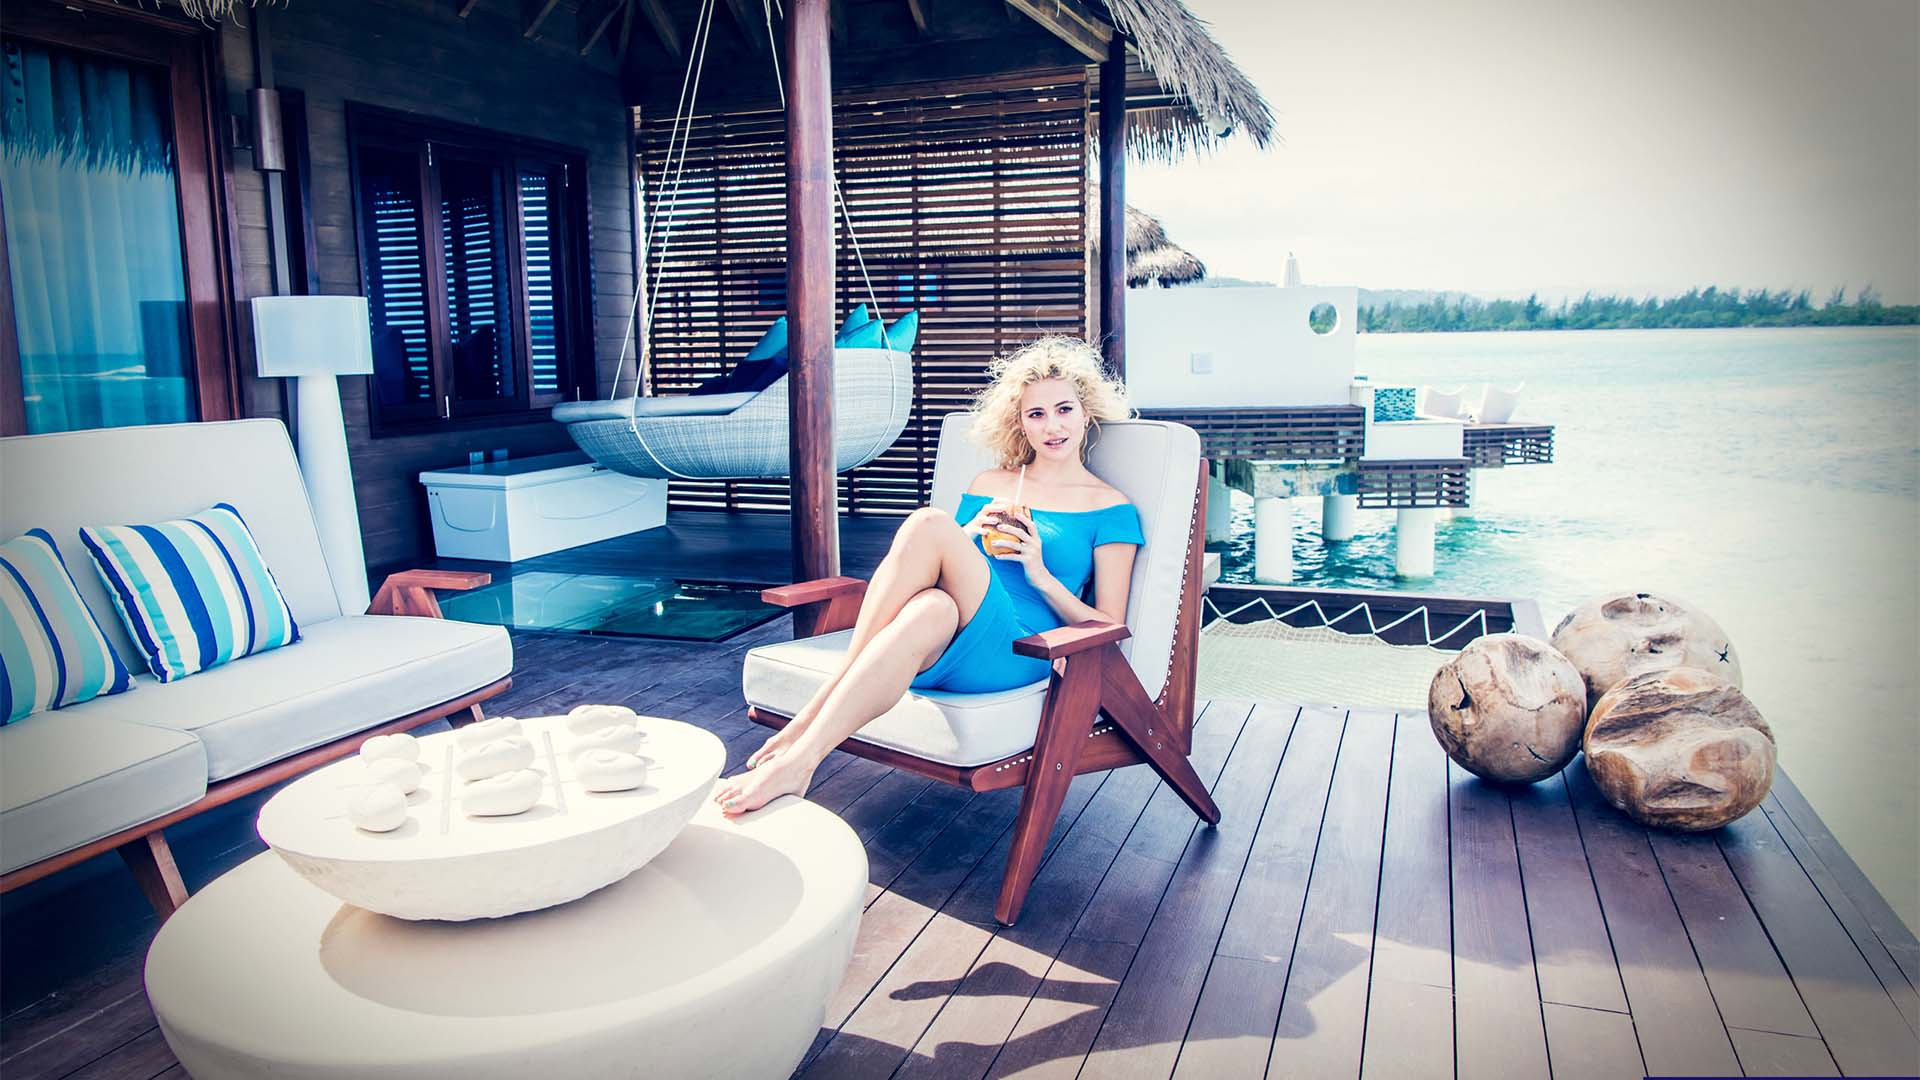 Pixie Lott at Sandals Royal Caribbean's new over-the-water suites